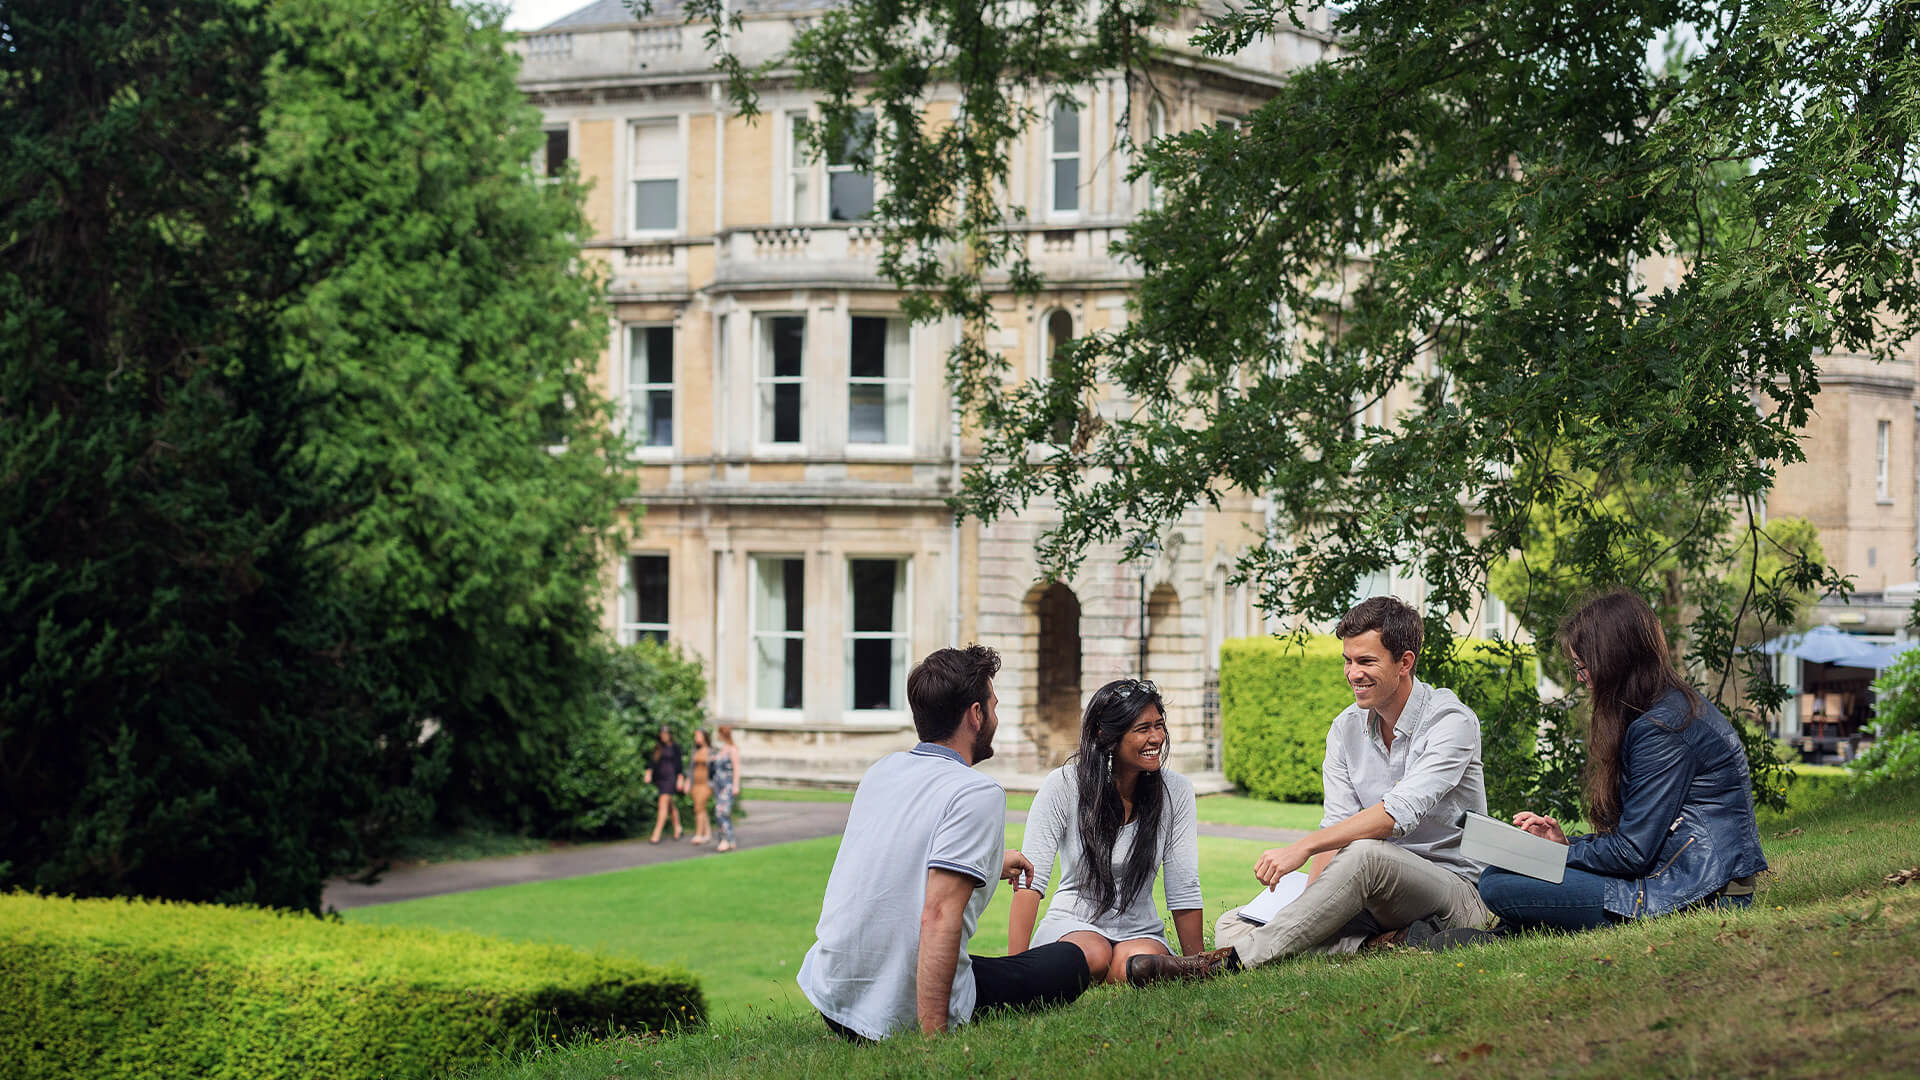 Students studying outside on the grass at University of Exeter campus